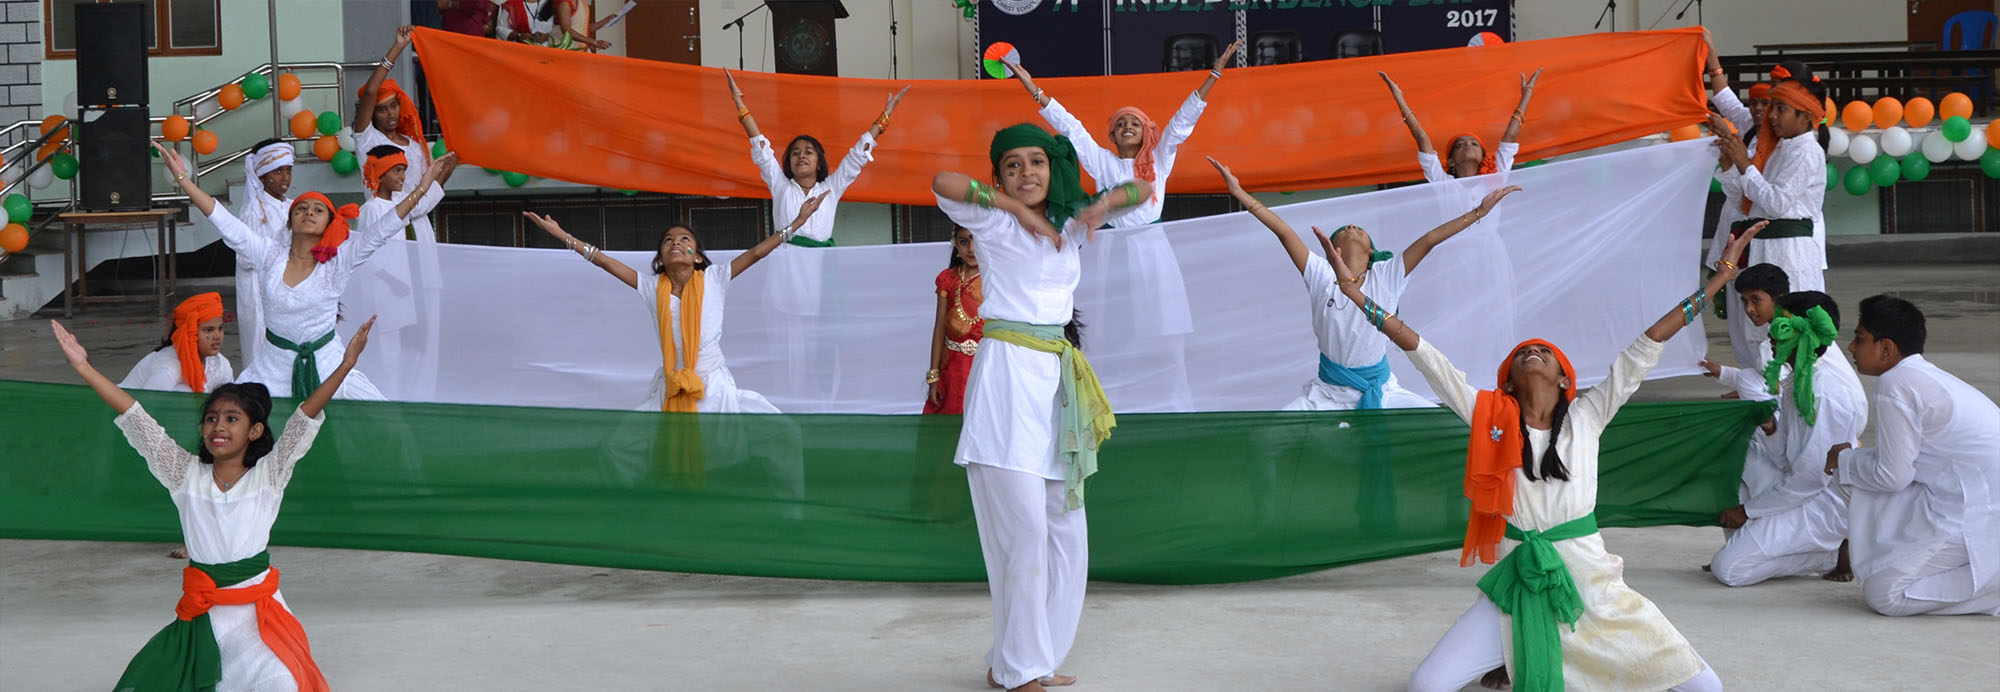 Christ School celebrated the 71 Independence Day with great zeal and spirit befitting the occasion. It was heartening to see children apply themselves with as much zeal and zest to the celebration.